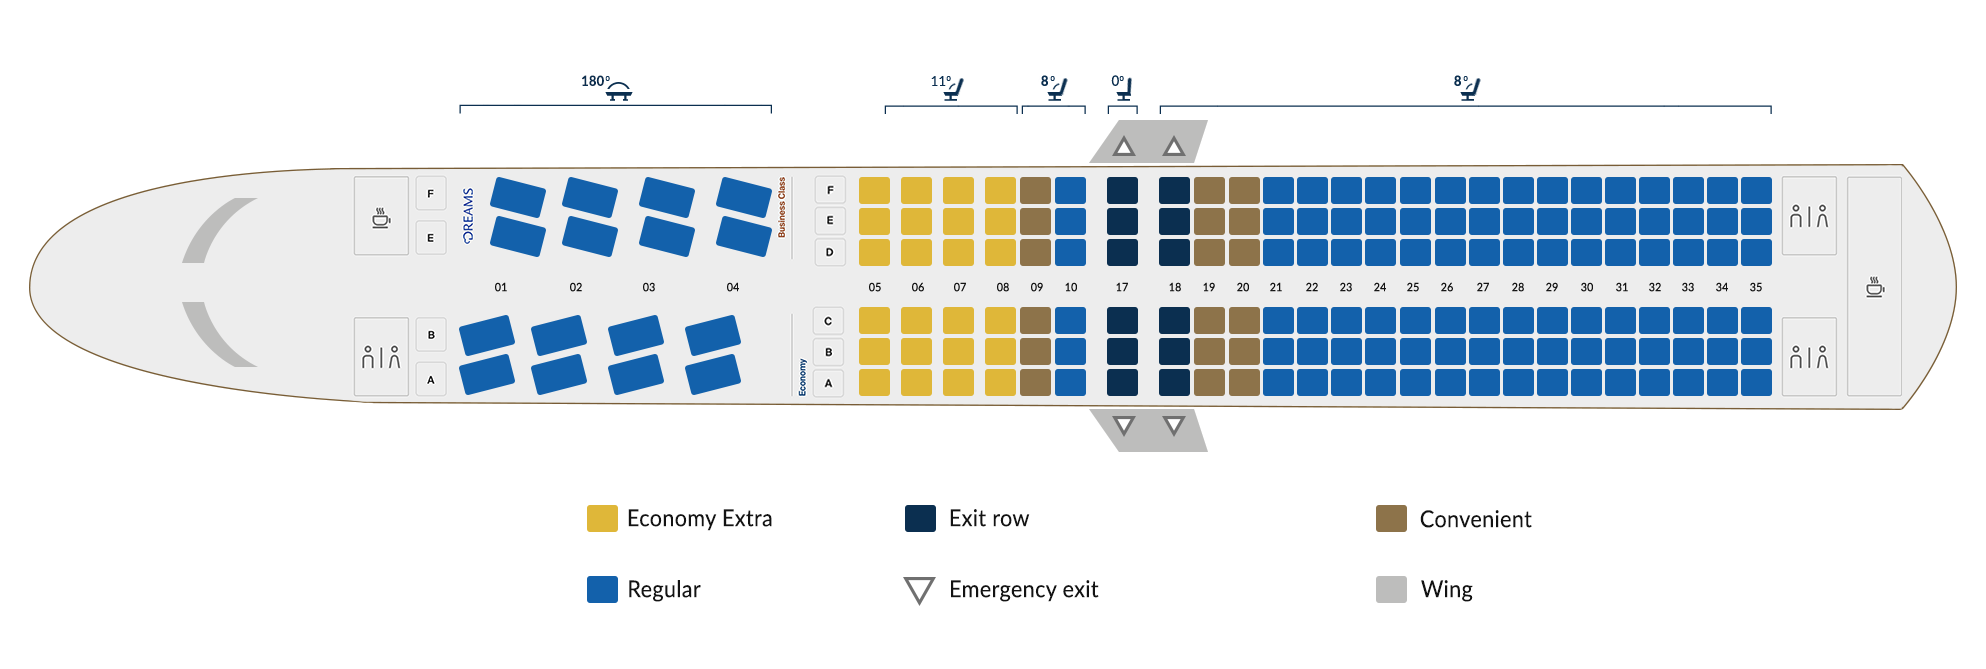 Boeing 737-MAX 9 seats map